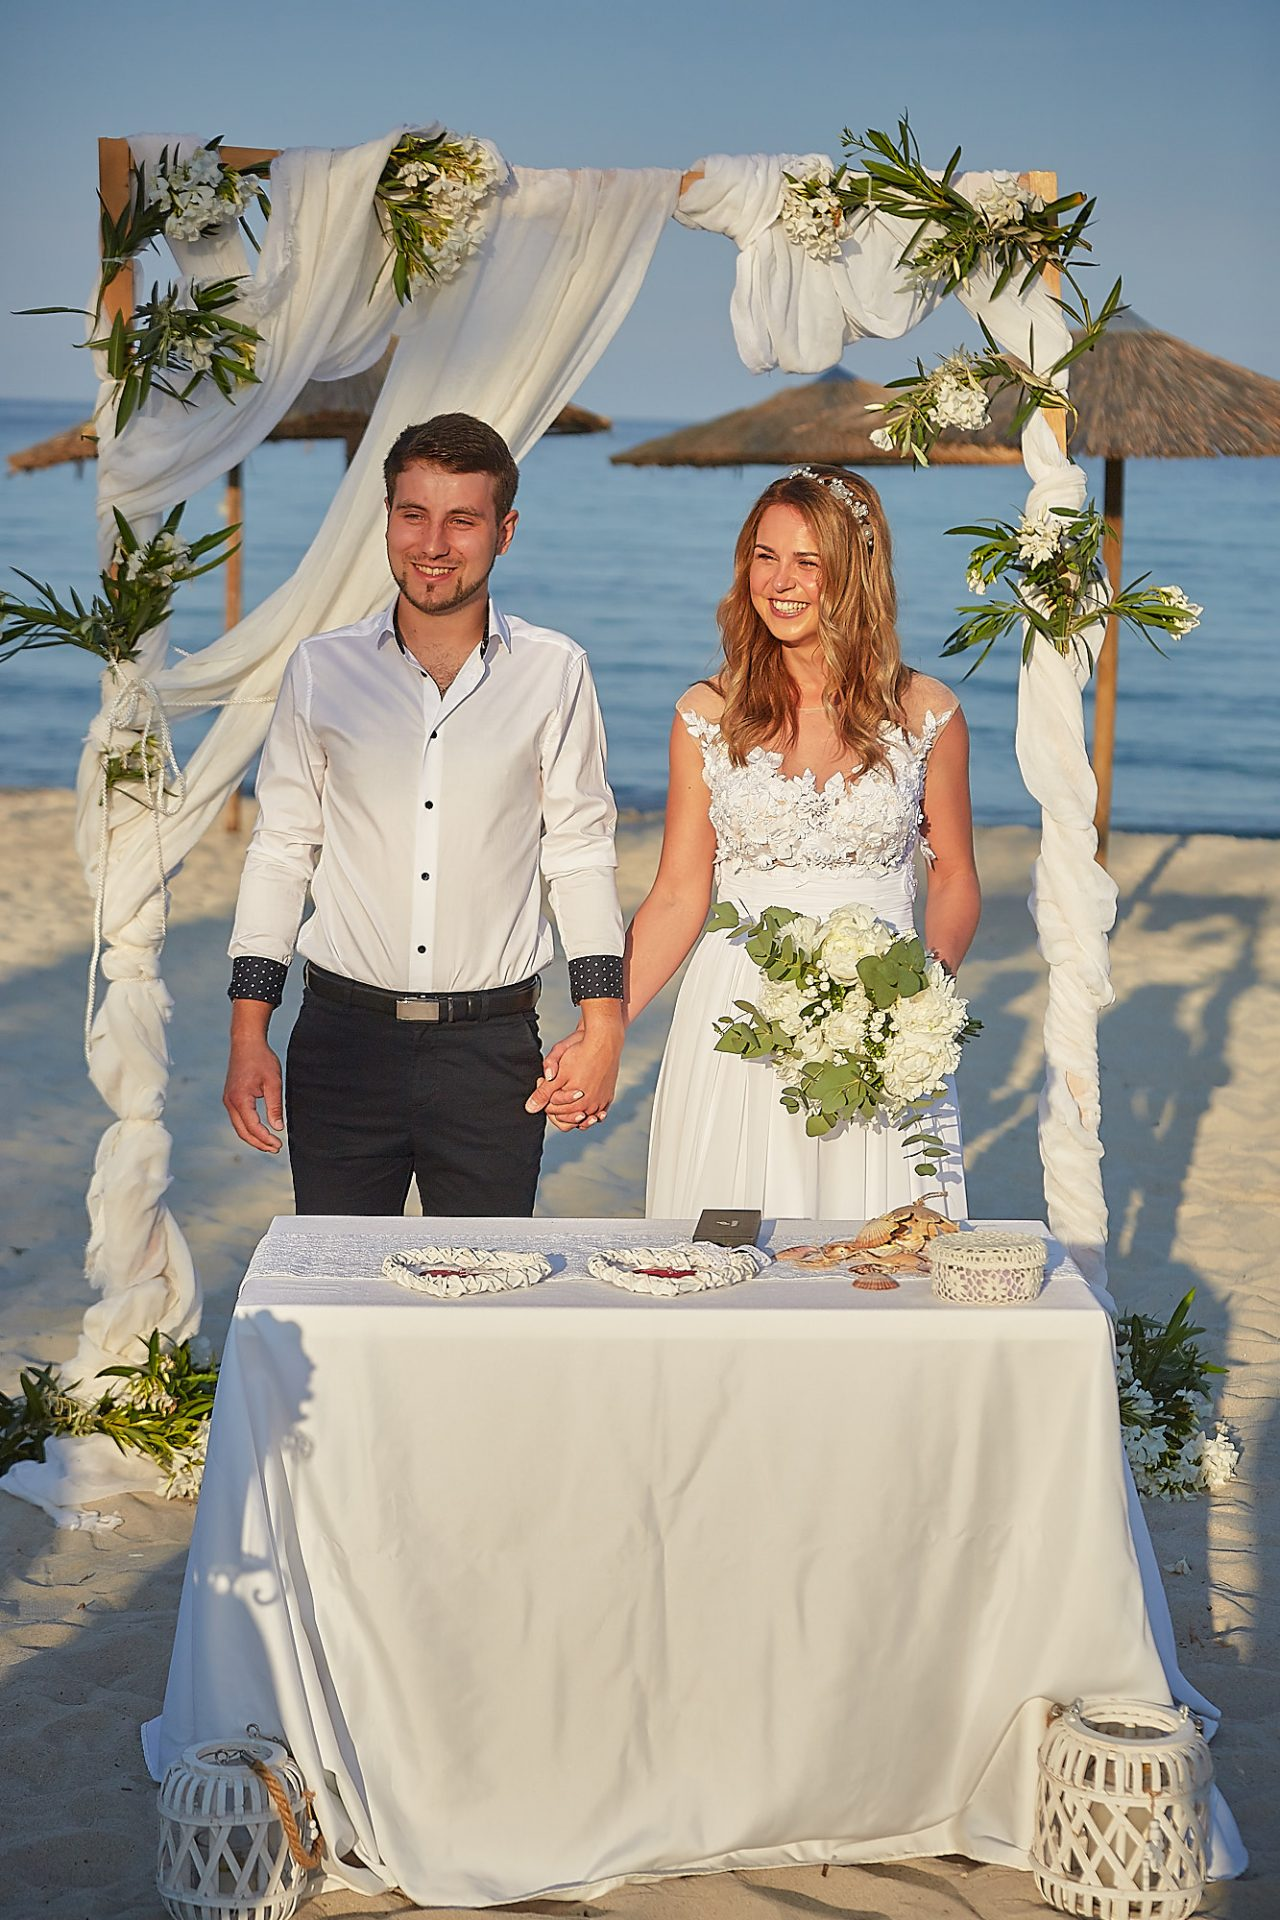 Thassos Golden Beach Wedding on the beach wedding table and decor